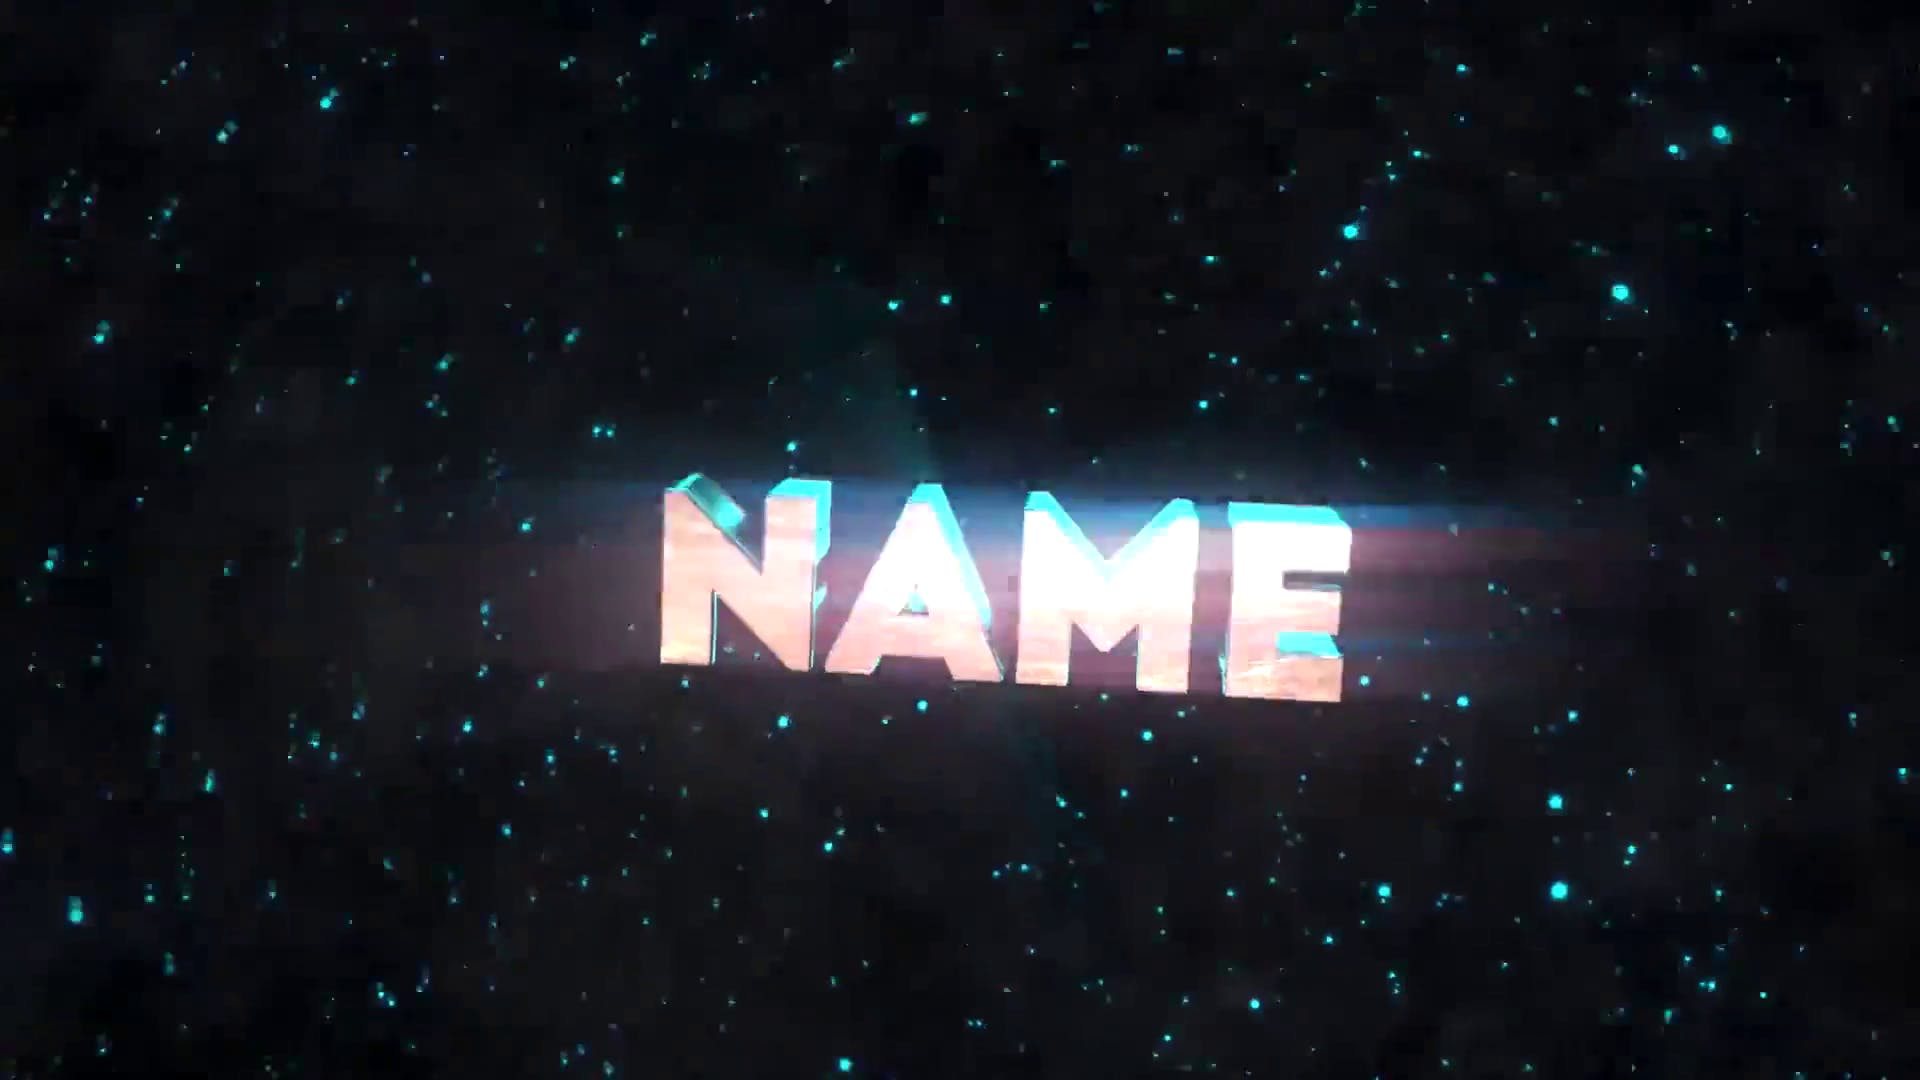 Space Blue Blender ONLY Intro Template FREE DOWNLOAD